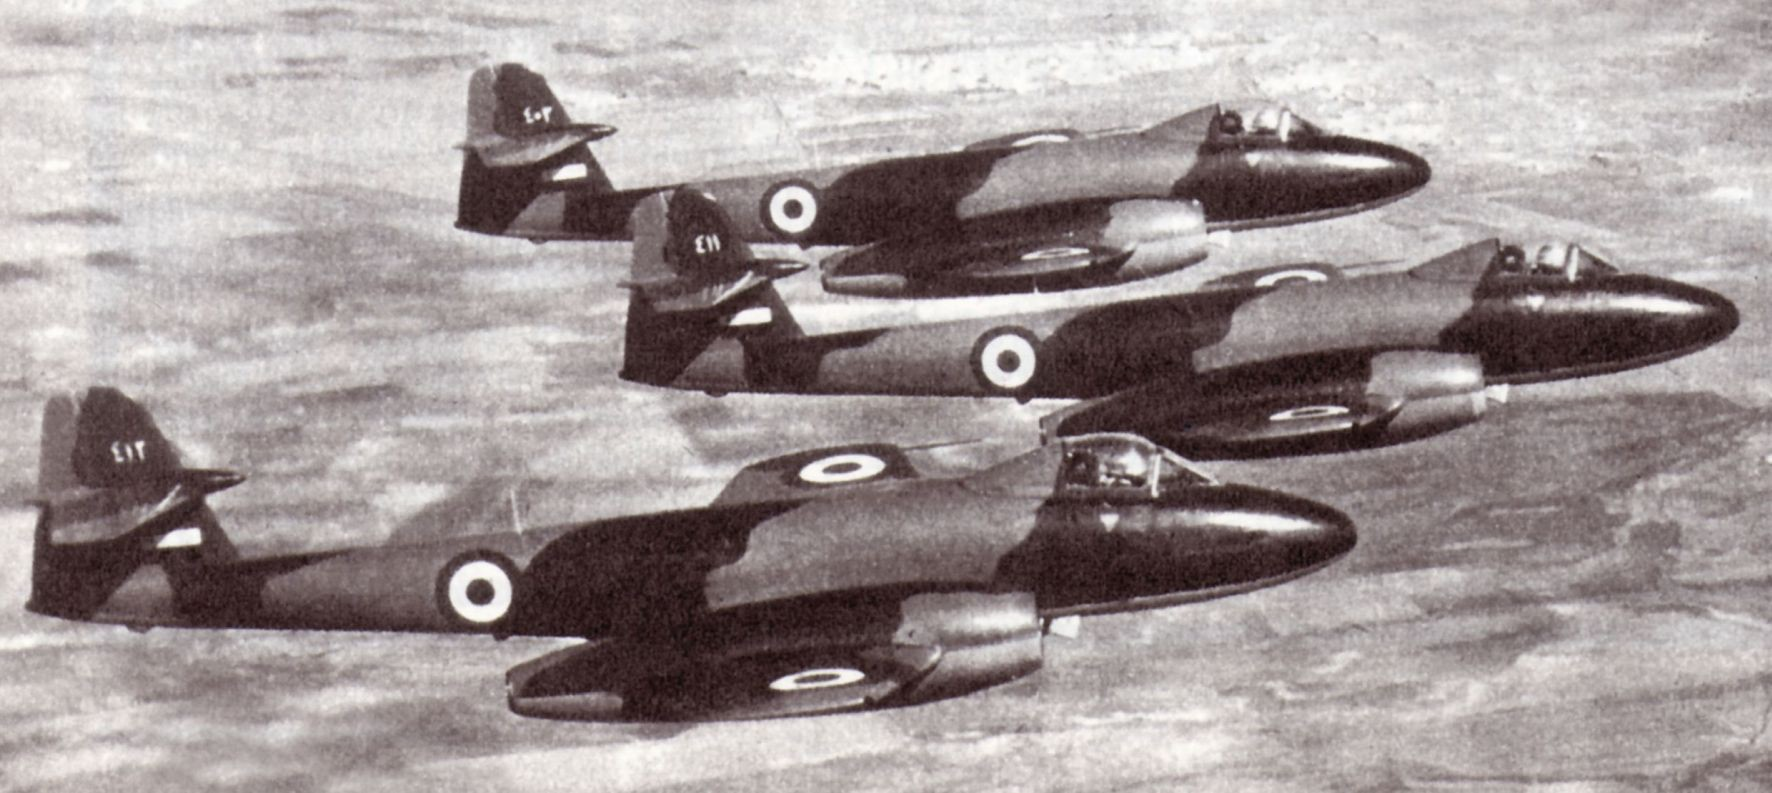 Gloster Meteor F.8 syriens en formation